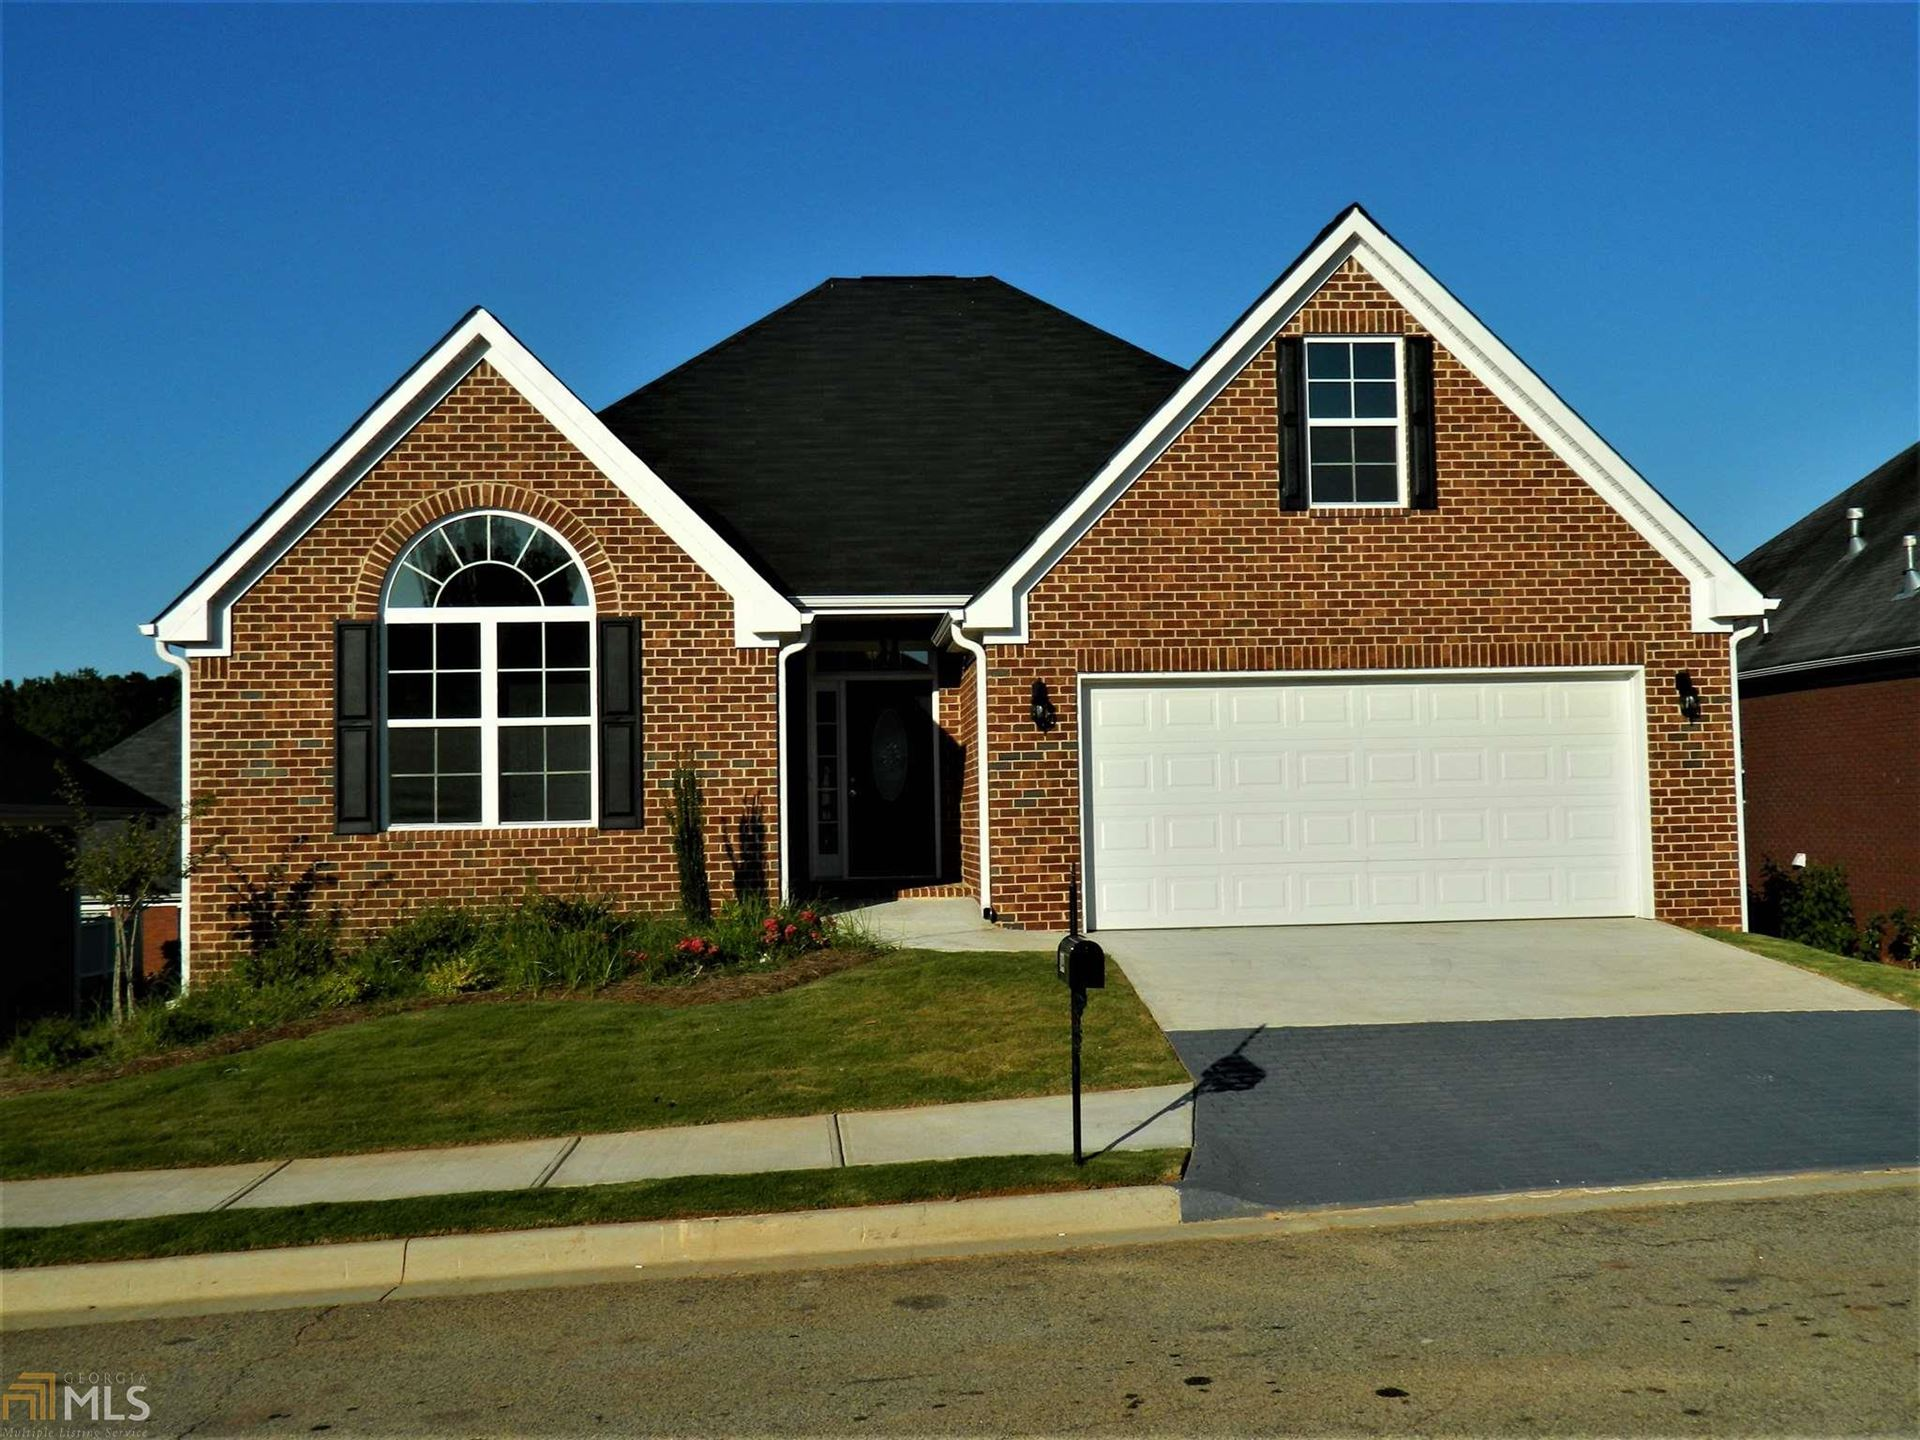 144 Pinnacle Ln, McDonough, GA 30253 - #: 8827994